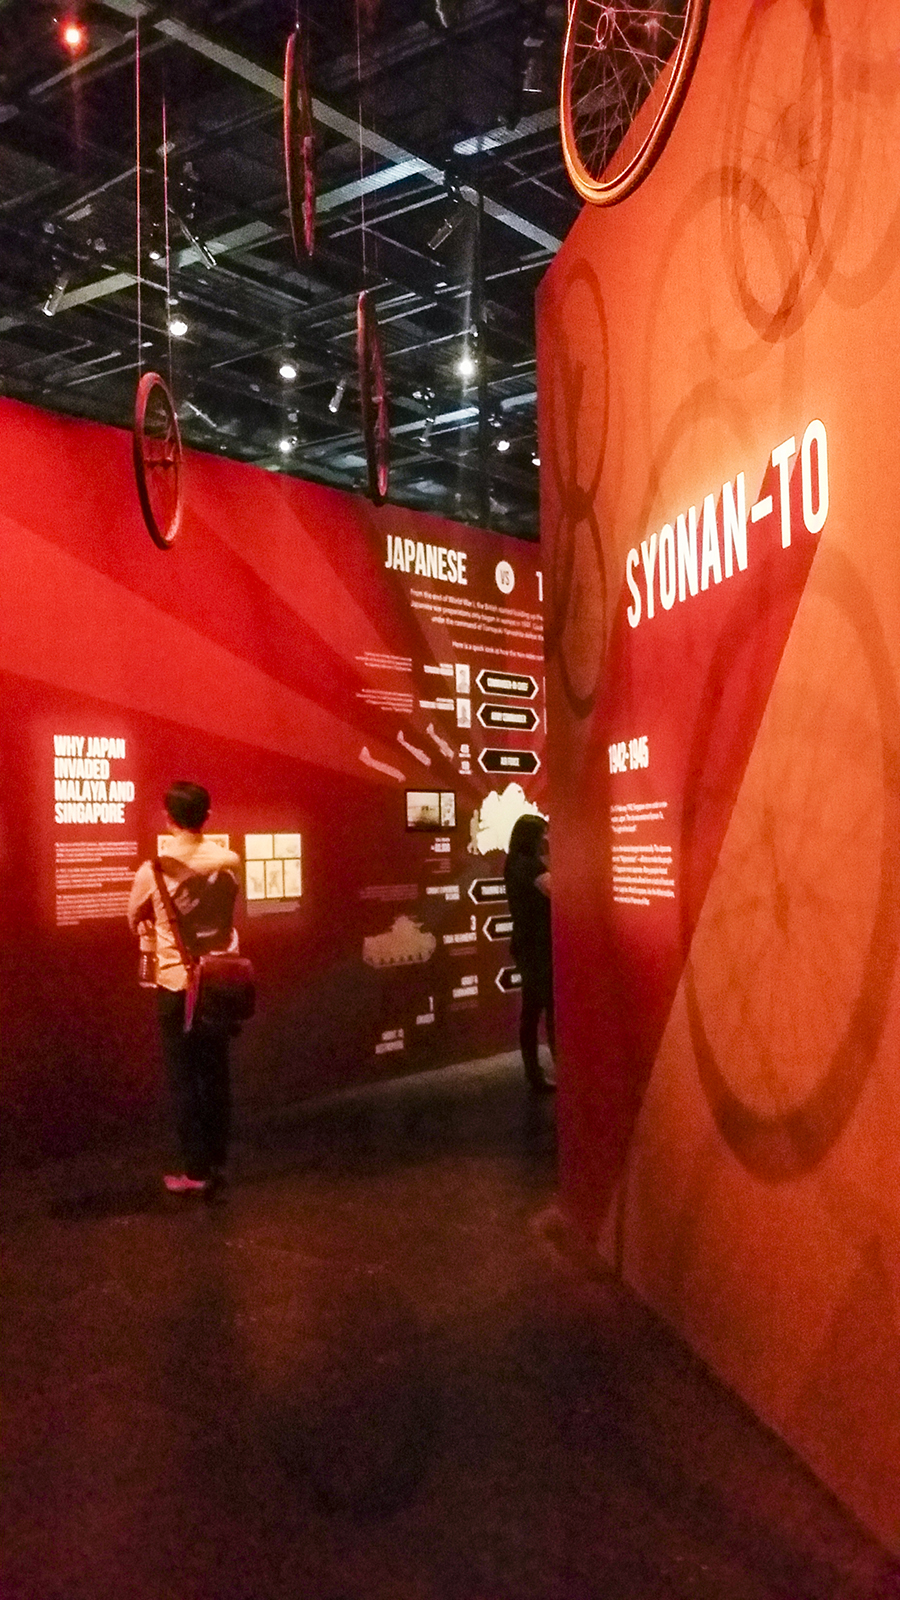 Japanese occupation period during World War II at the Singapura: 700 Years exhibition at the National Museum of Singapore.